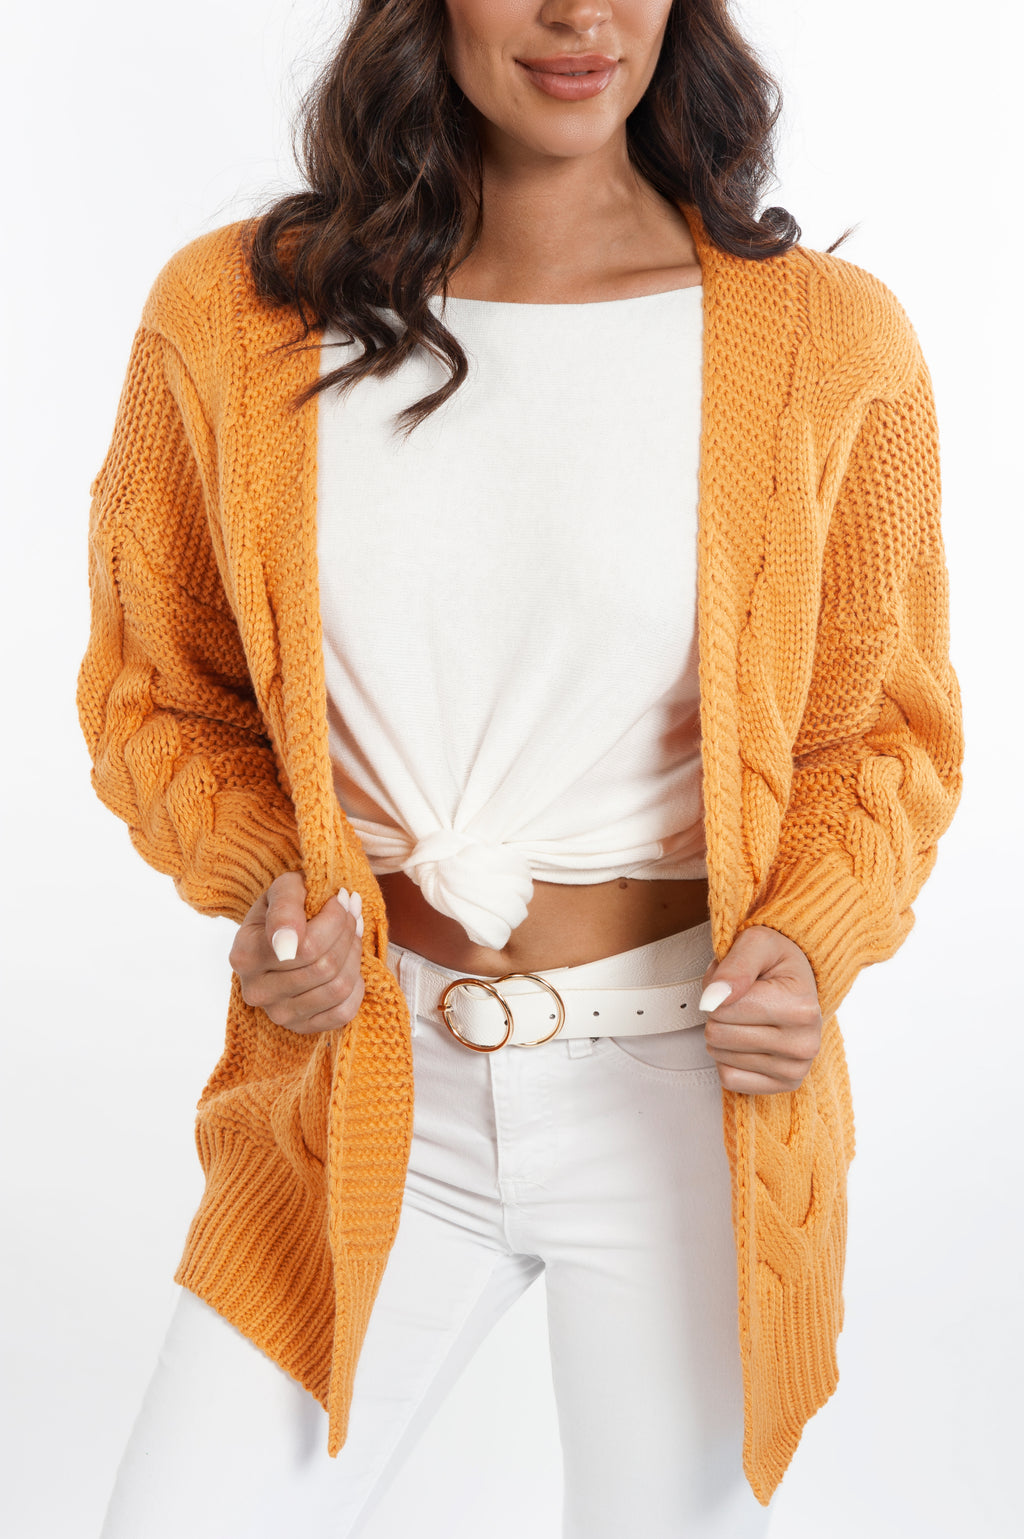 Cable Knit Cardigan - Camel - Islandlace